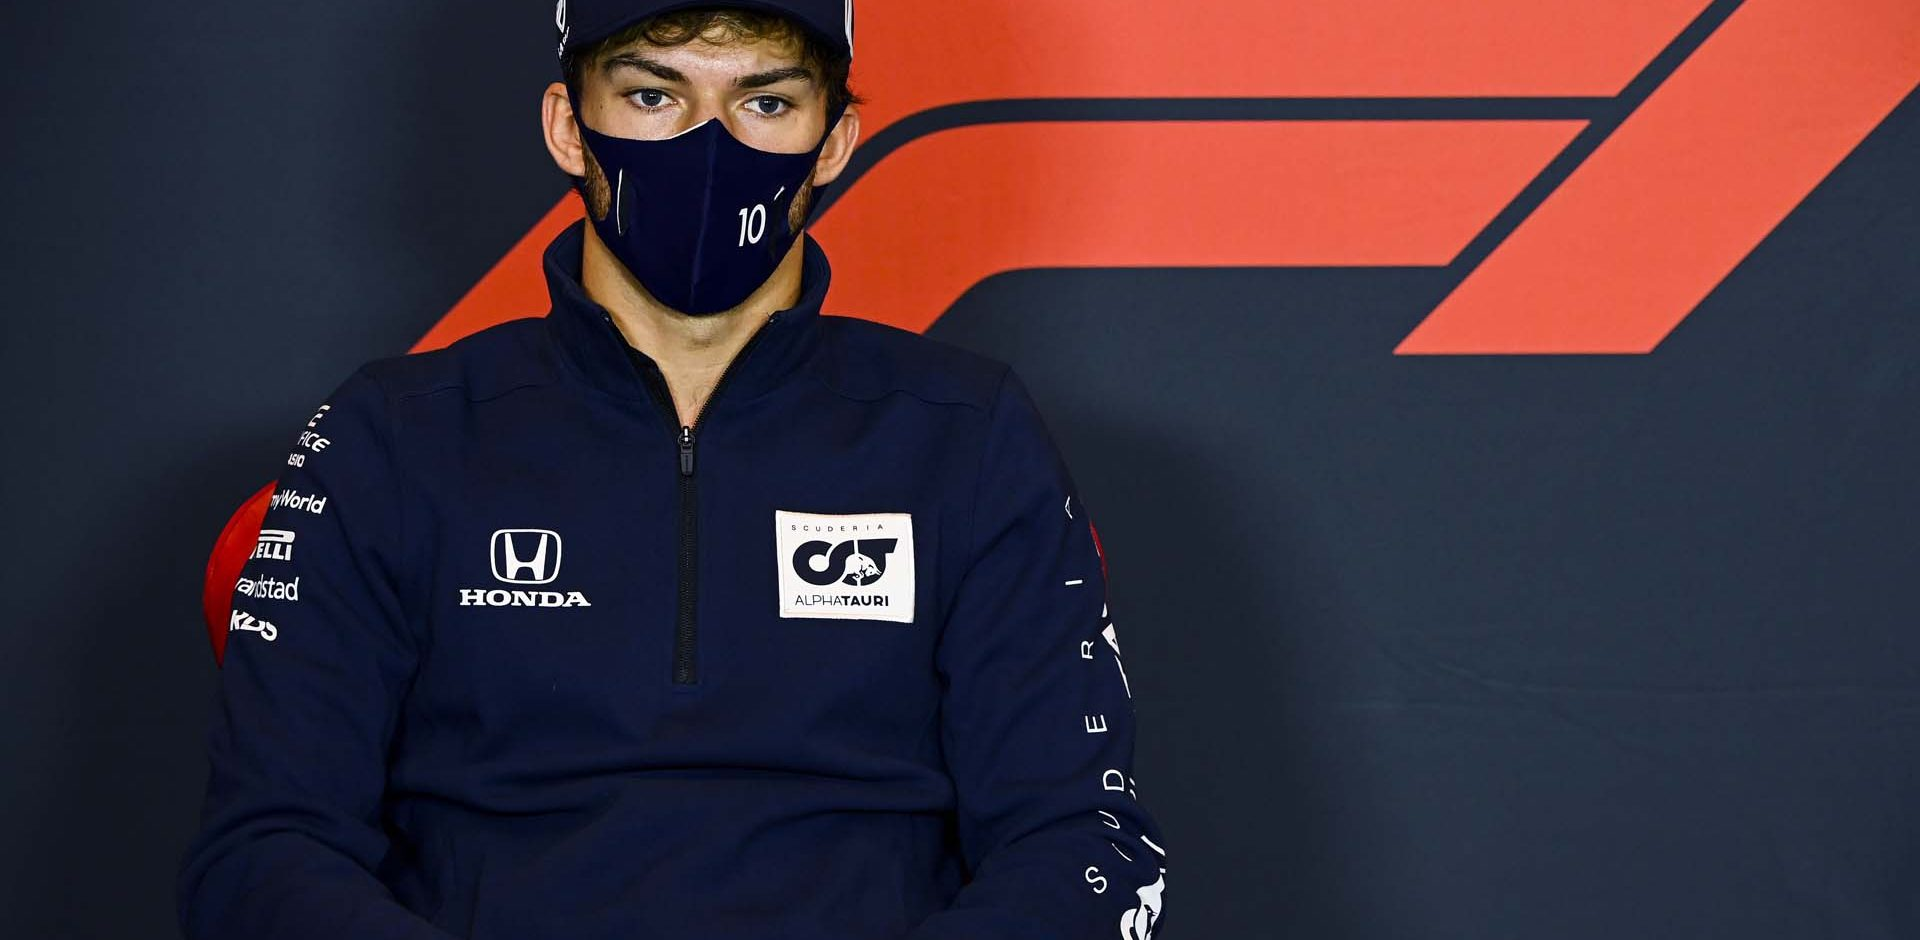 IMOLA, ITALY - OCTOBER 30: Pierre Gasly of France and Scuderia AlphaTauri talks in the Drivers Press Conference during previews ahead of the F1 Grand Prix of Emilia Romagna at Autodromo Enzo e Dino Ferrari on October 30, 2020 in Imola, Italy. (Photo by Mark Sutton - Pool/Getty Images)